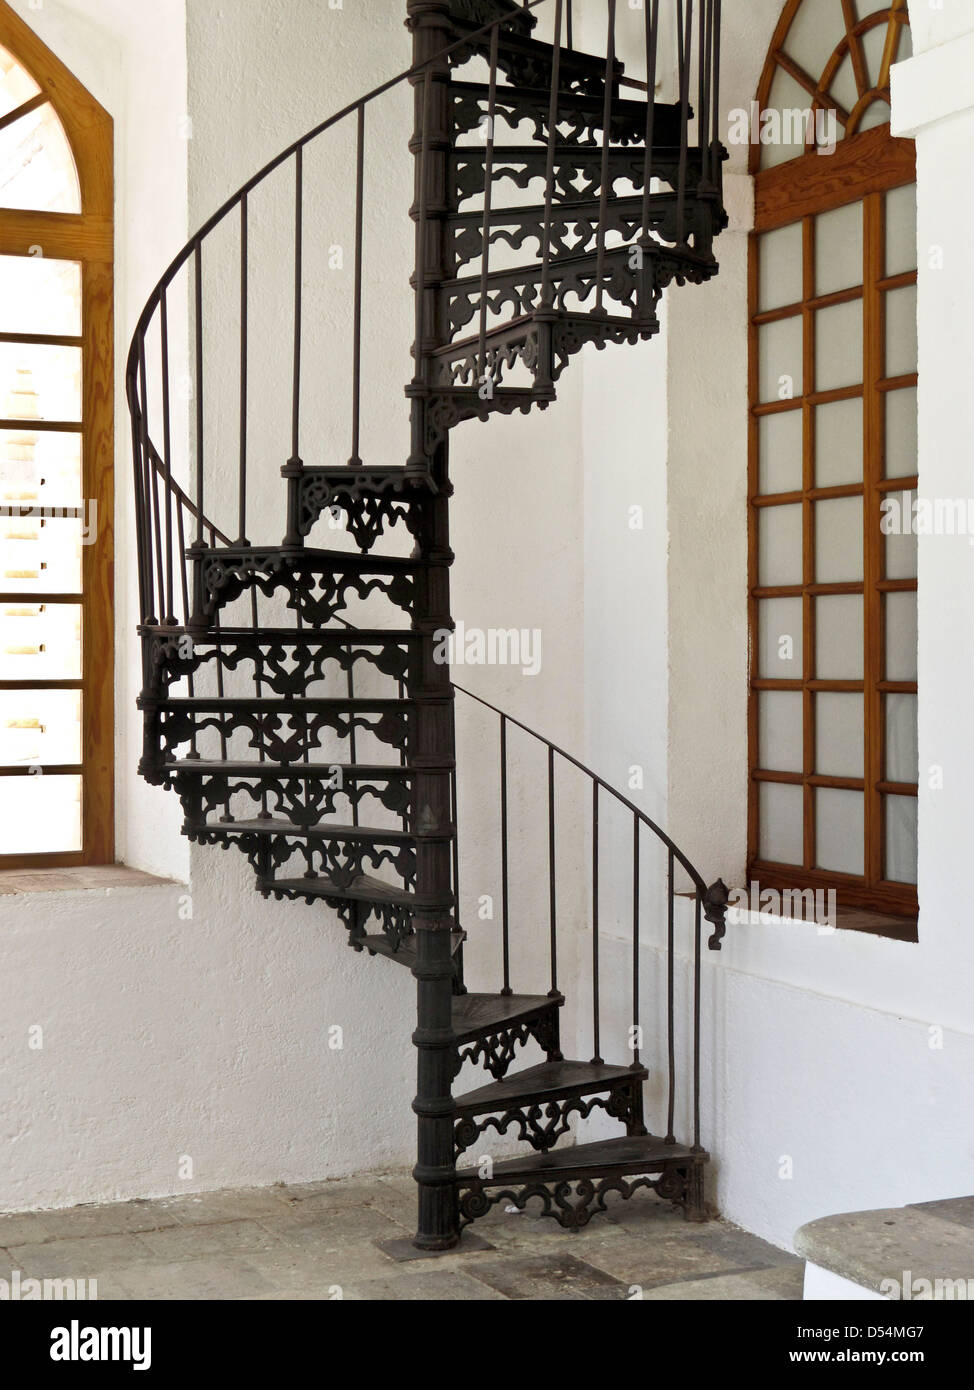 decorative 19th century cast iron spiral stair between levels at textile mill converted to Center for the Arts San Stock Photo